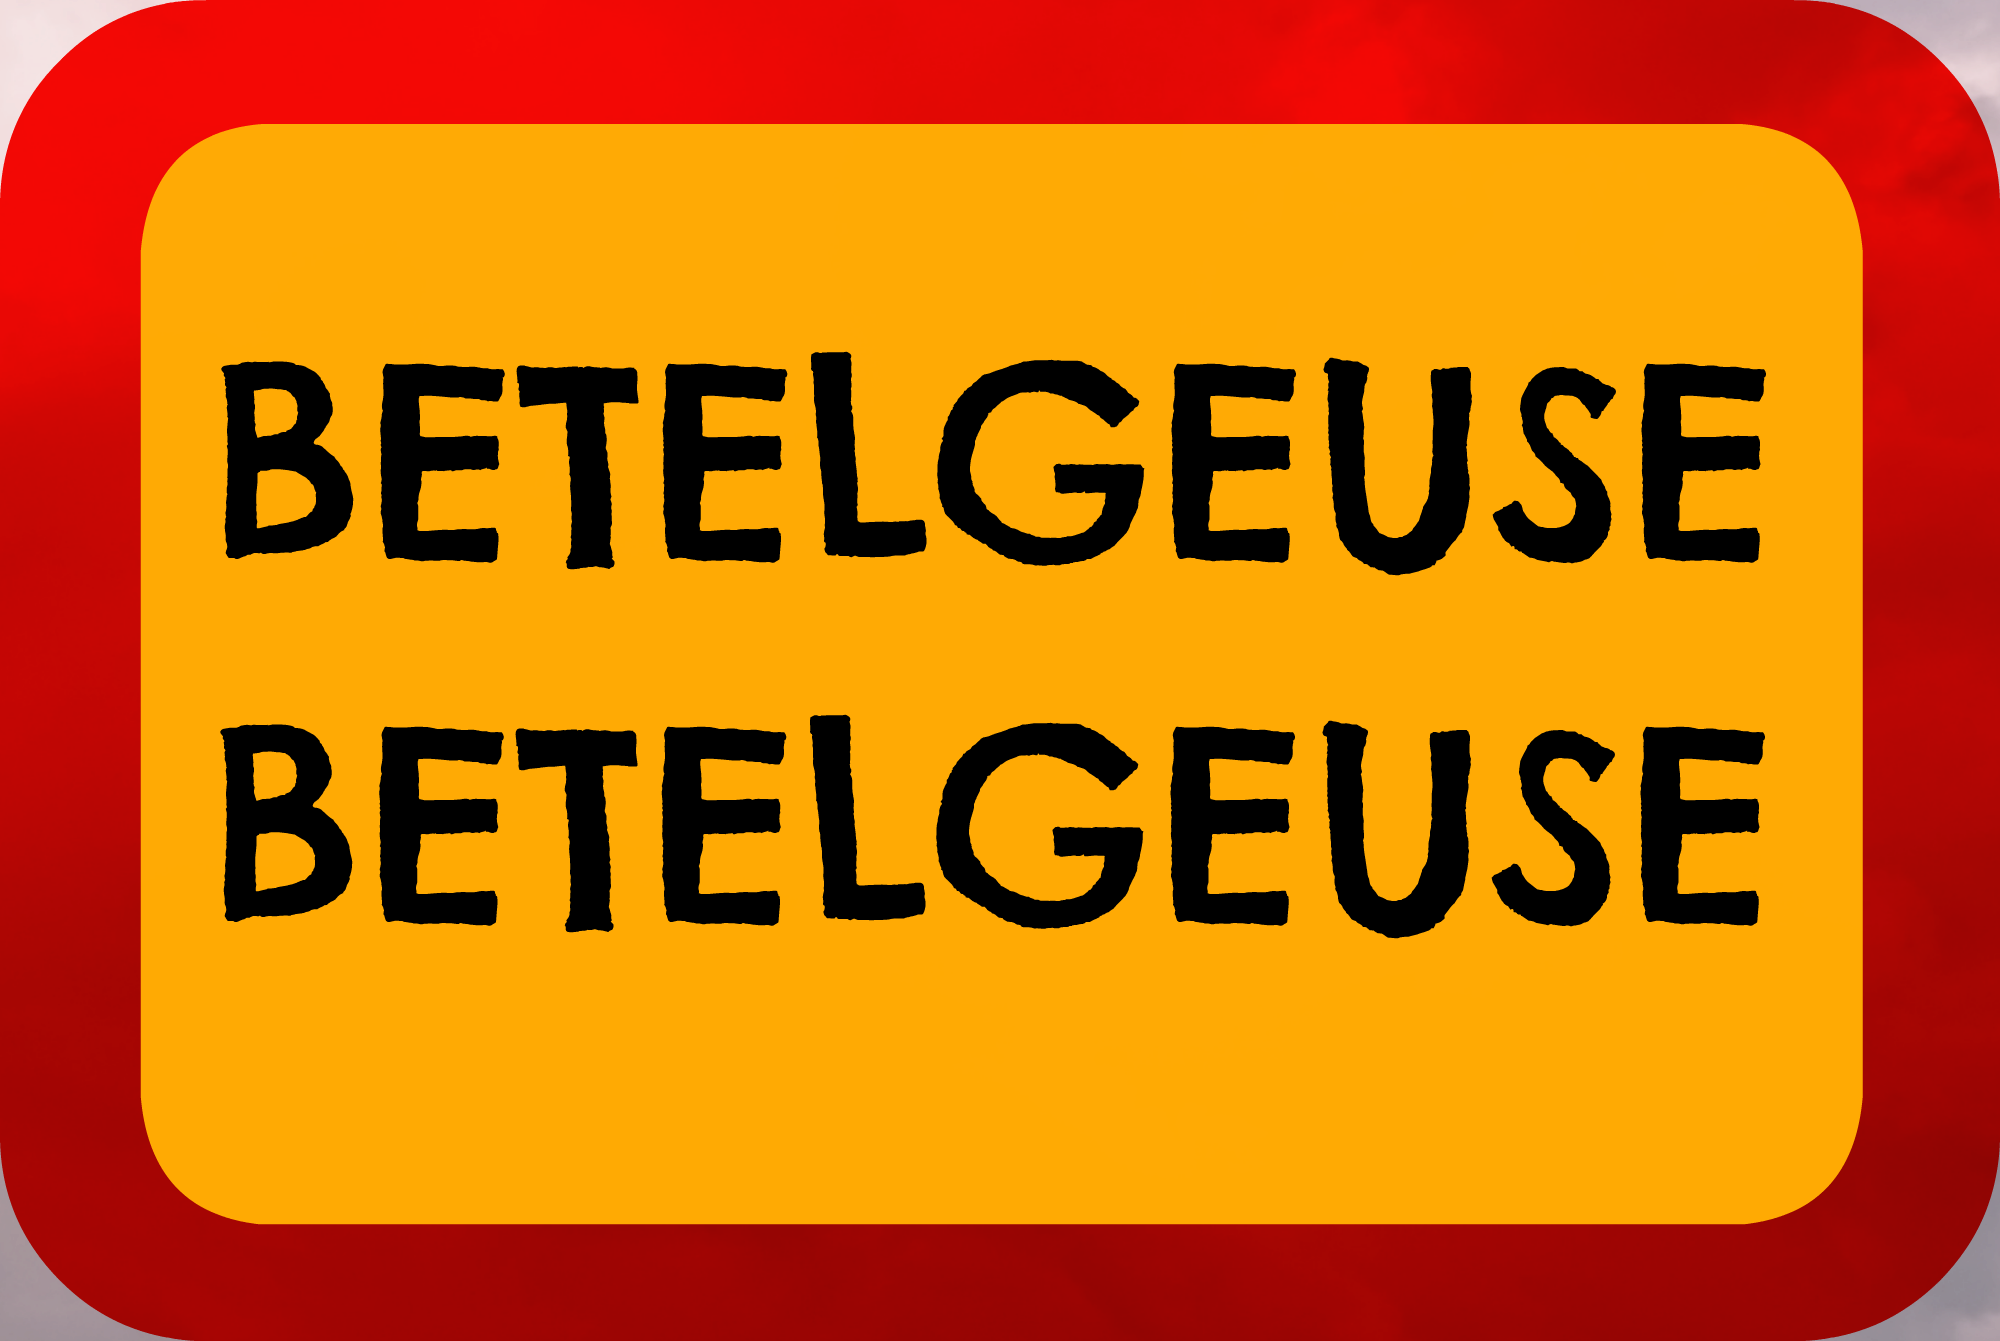 Betelgeuse Sign